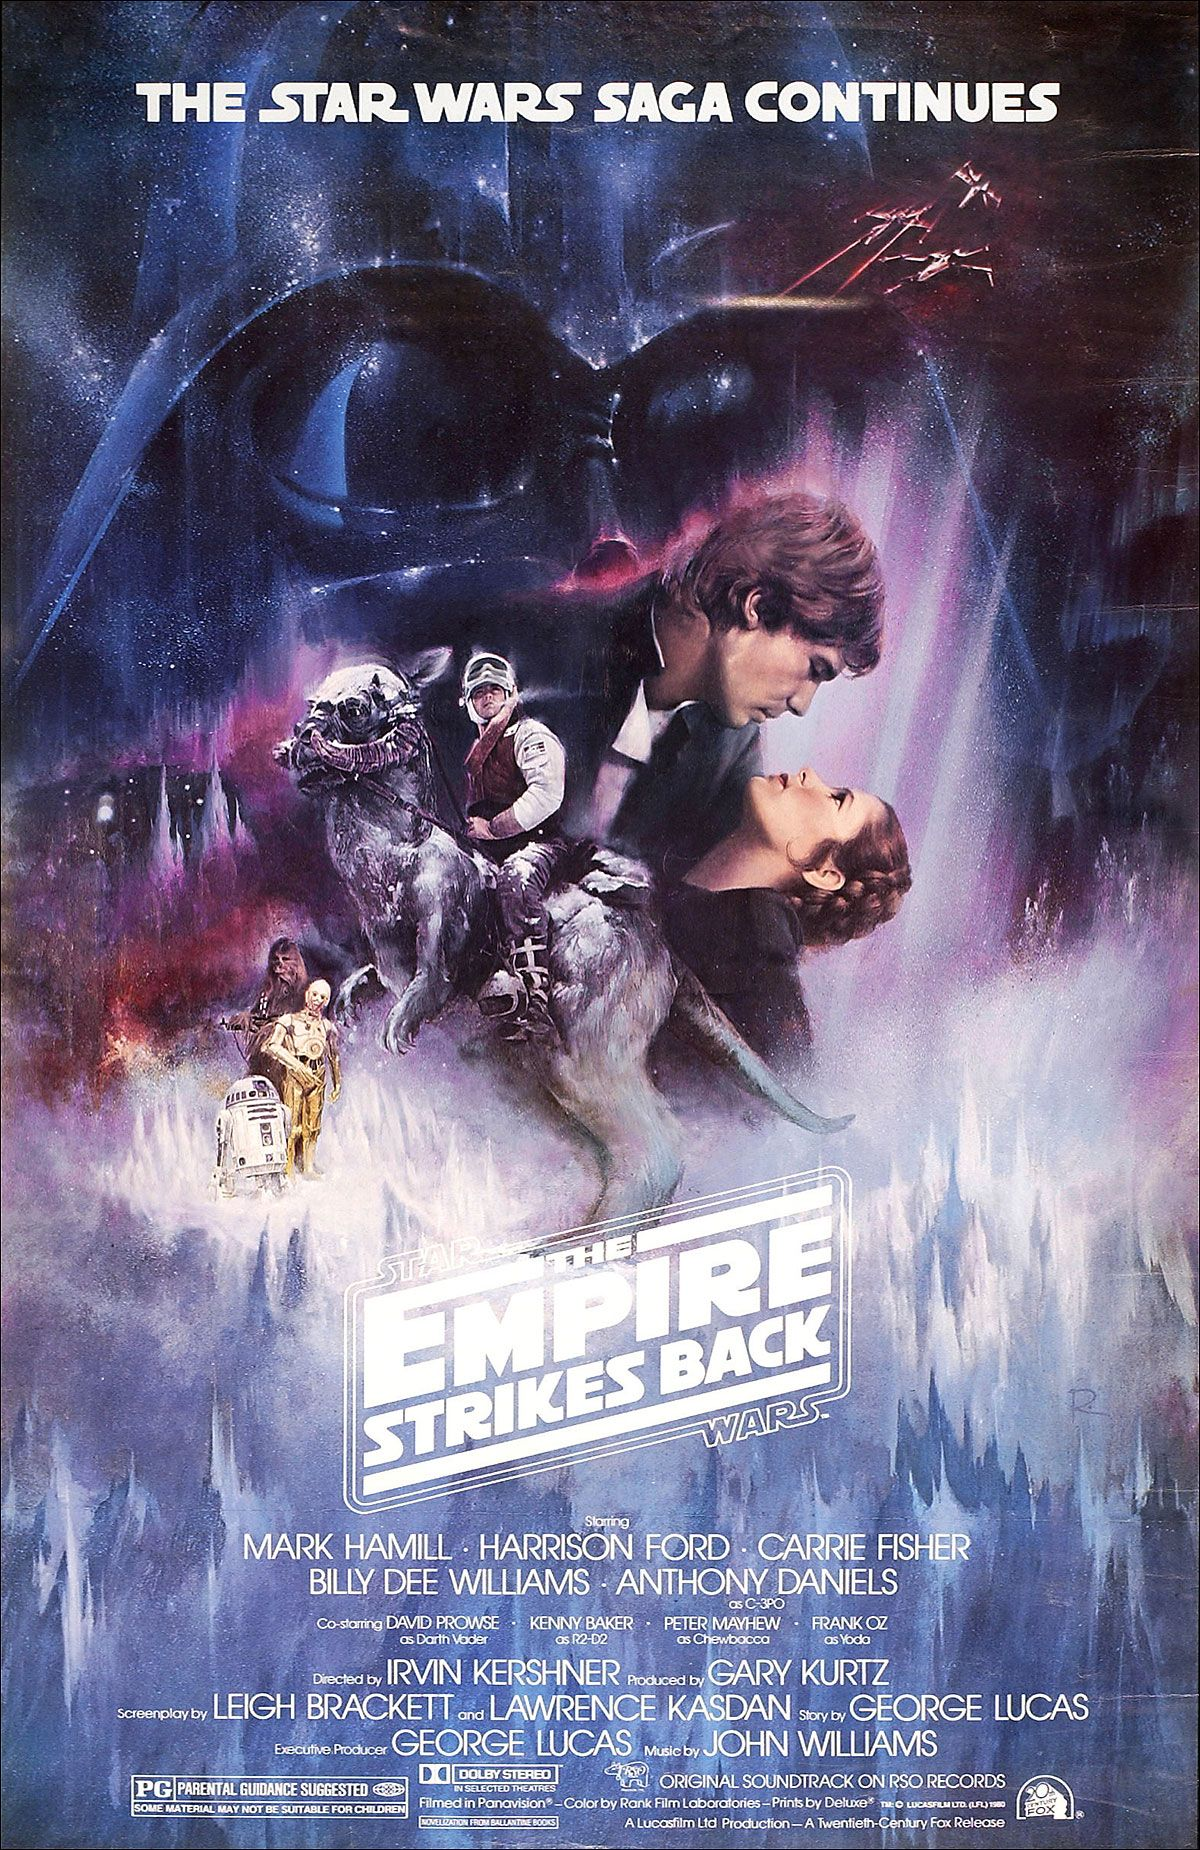 Star Wars Episode V The Empire Strikes Back 1980 Still My Favourite Of All The Star Wars Films Love It スターウォーズのポスター ポスター 映画